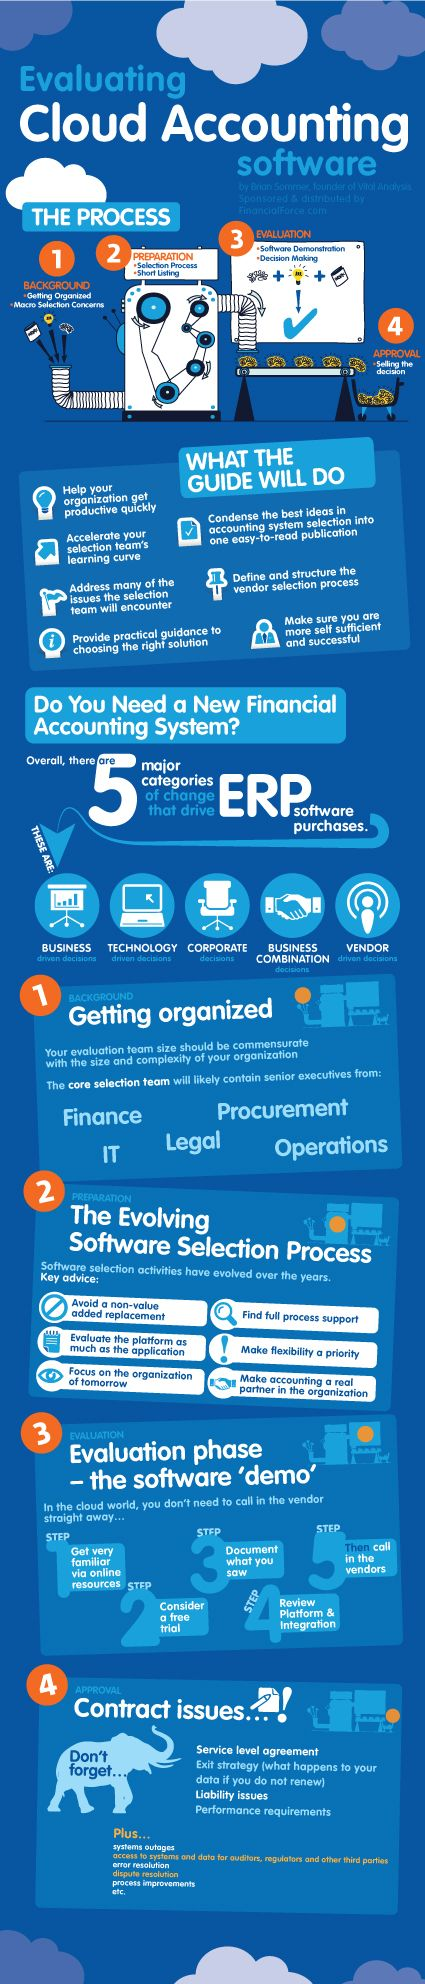 Cloud Infographic: Evaluating Cloud Accounting Software Posted 5/11/12 #infographics #social_media #technology